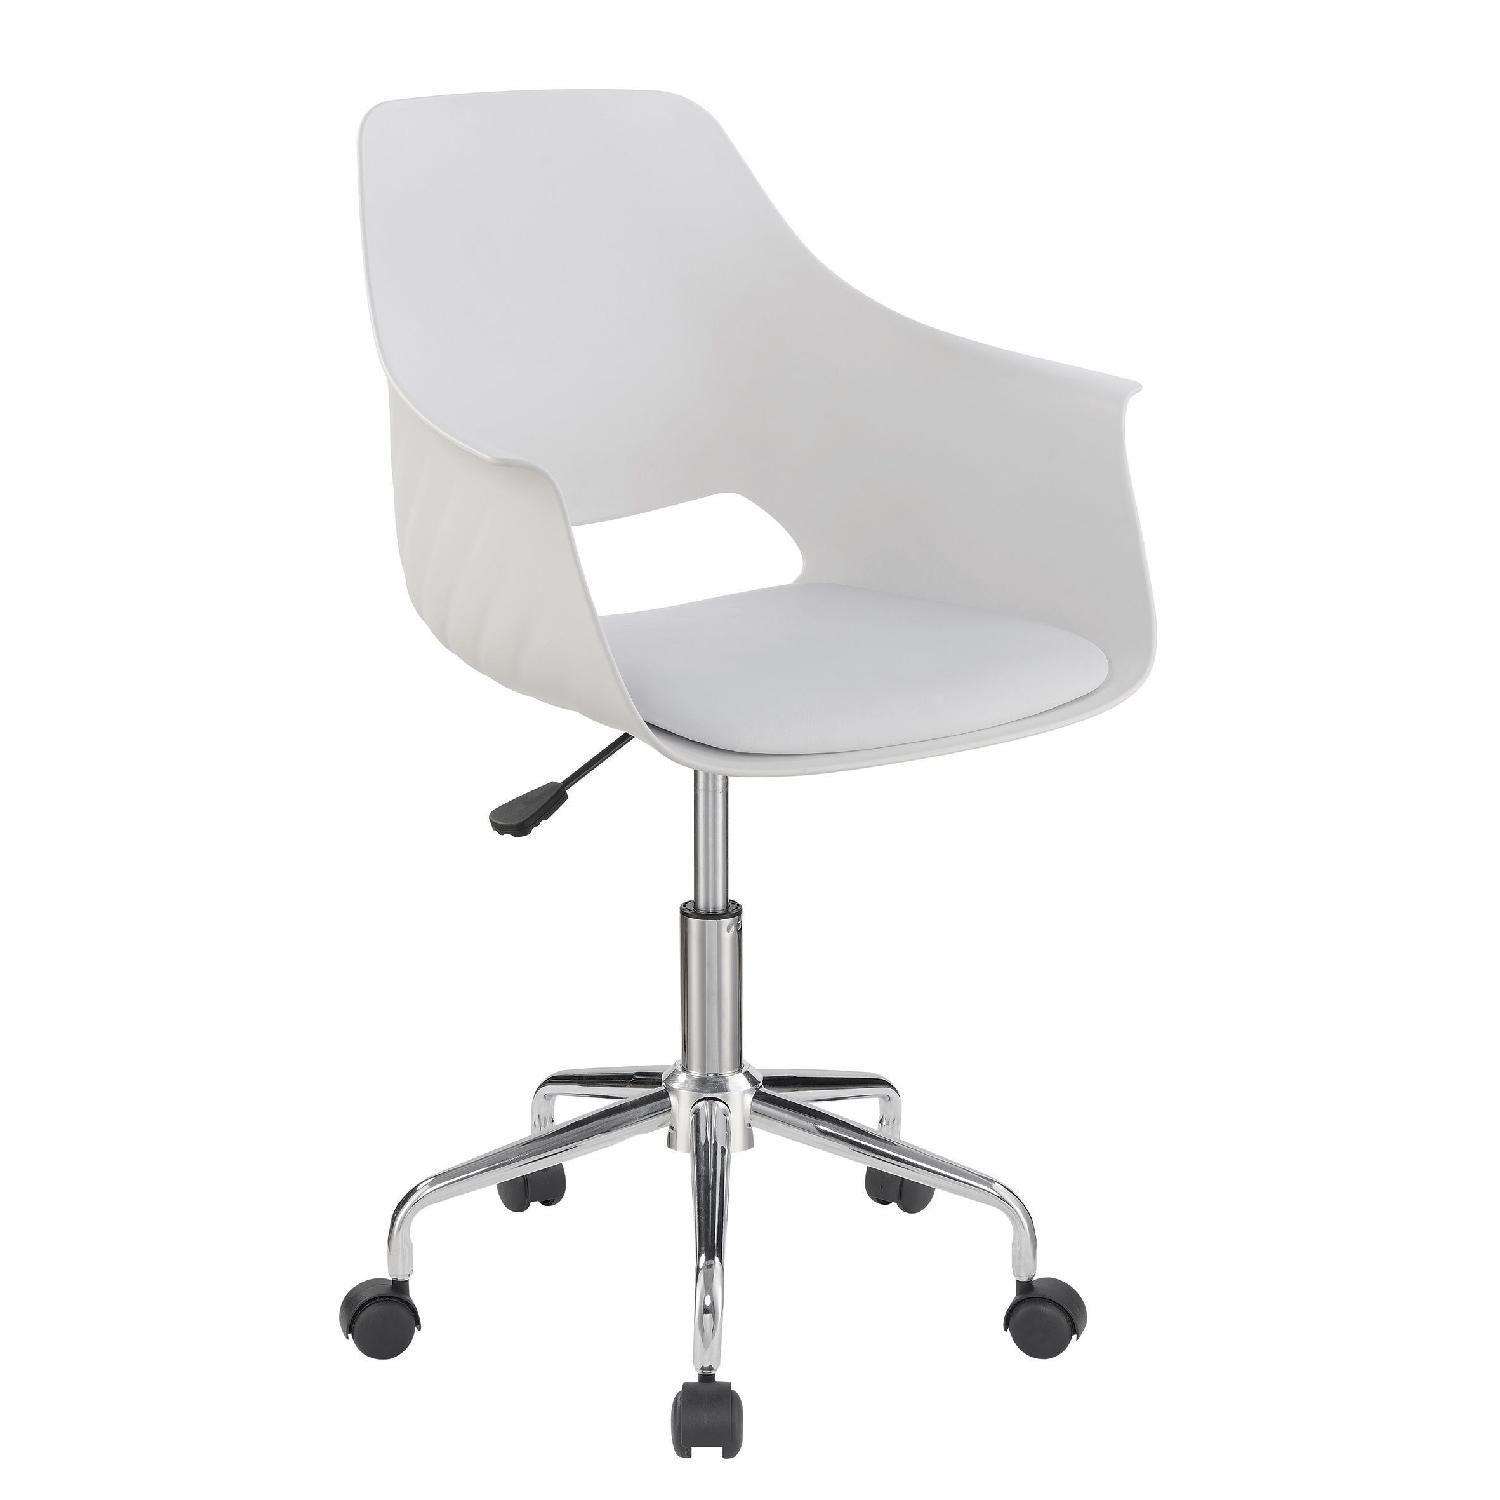 Modern Office Chair in White Leatherette w/ Back & Armrests